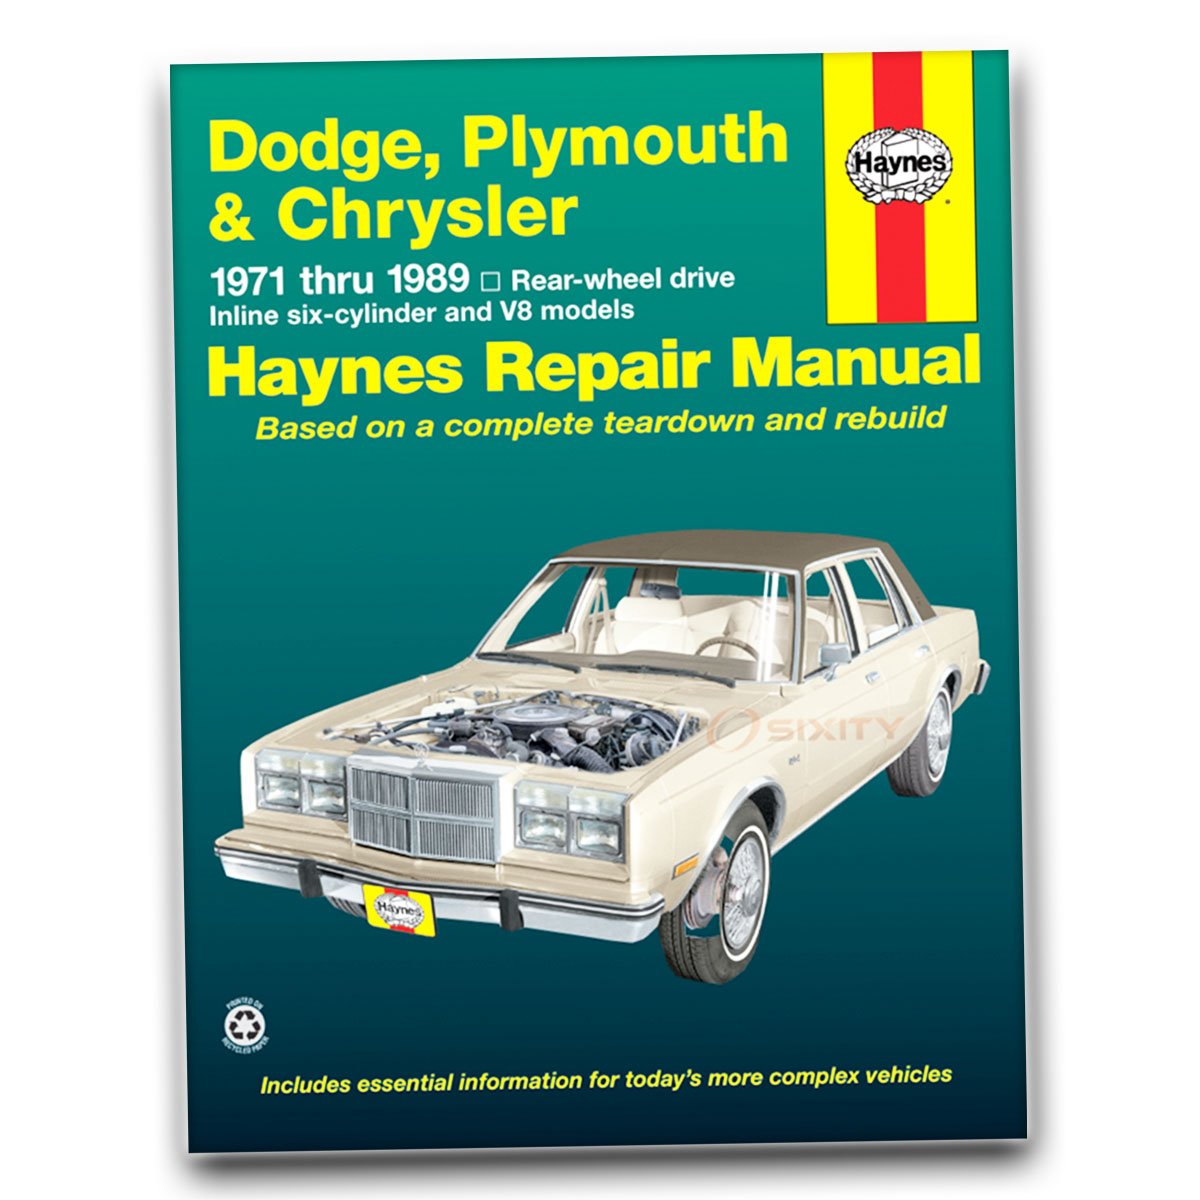 Haynes Repair Manual for Dodge Charger Base Sport 500 Special Edition R/T xn